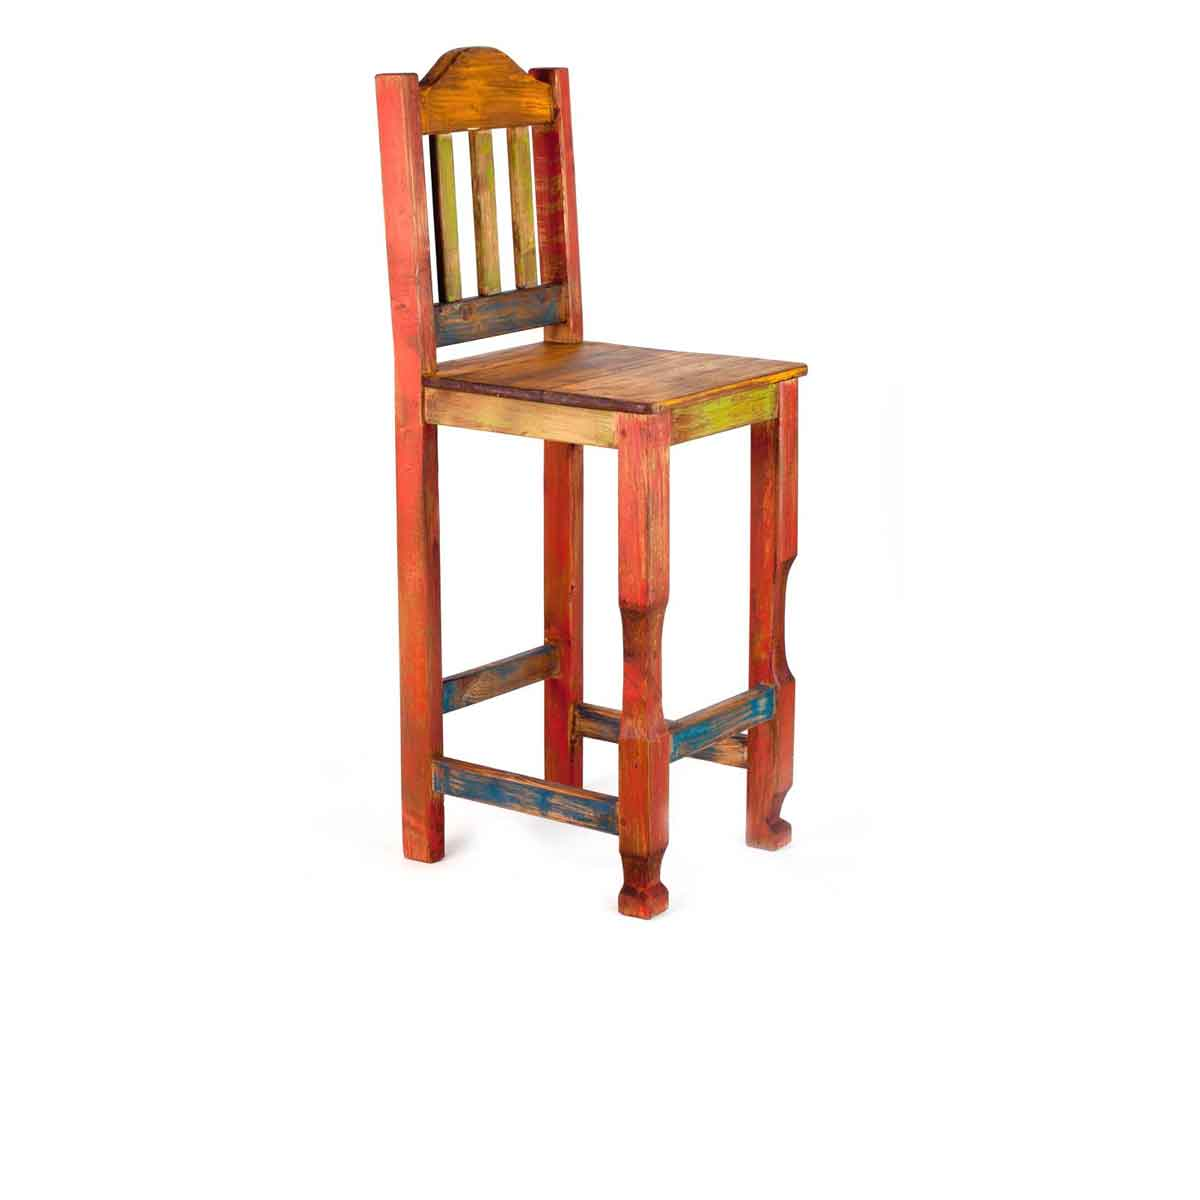 Bright Colored Bar Stools Order Bright And Vibrant Fiesta Rustic Bar Stool Online